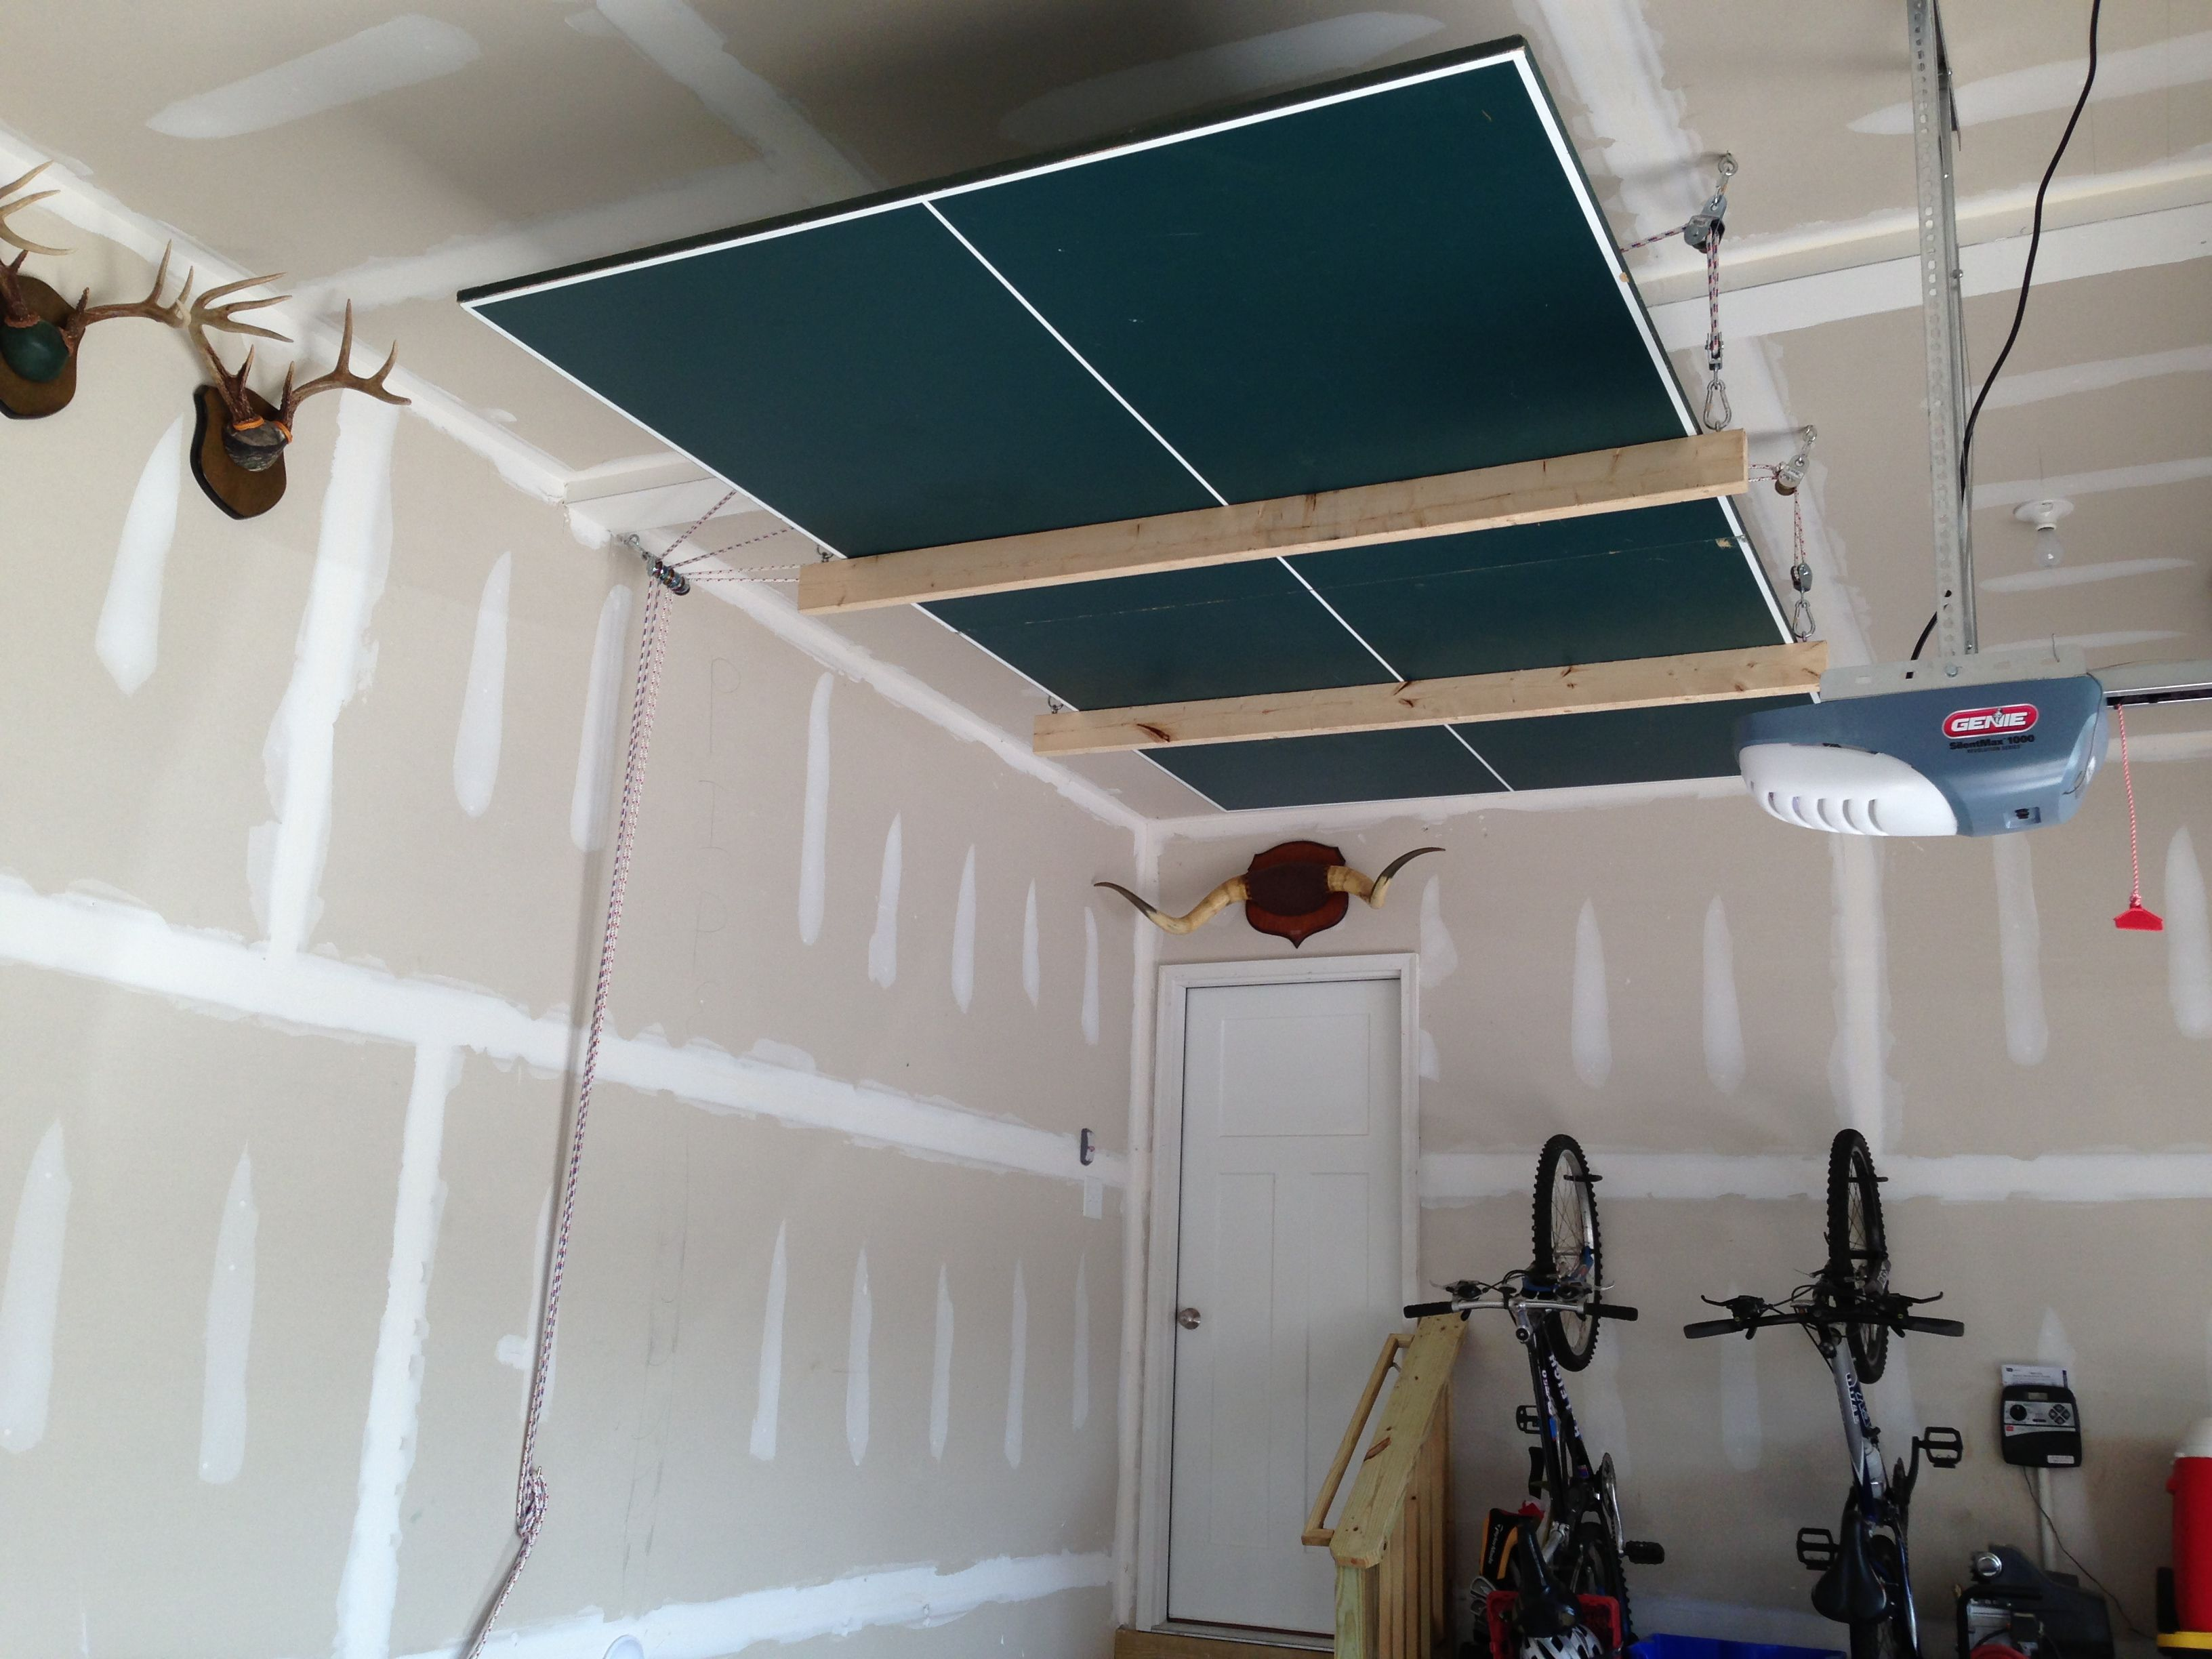 Ping Pong Table On Pulleys For More Garage Space My